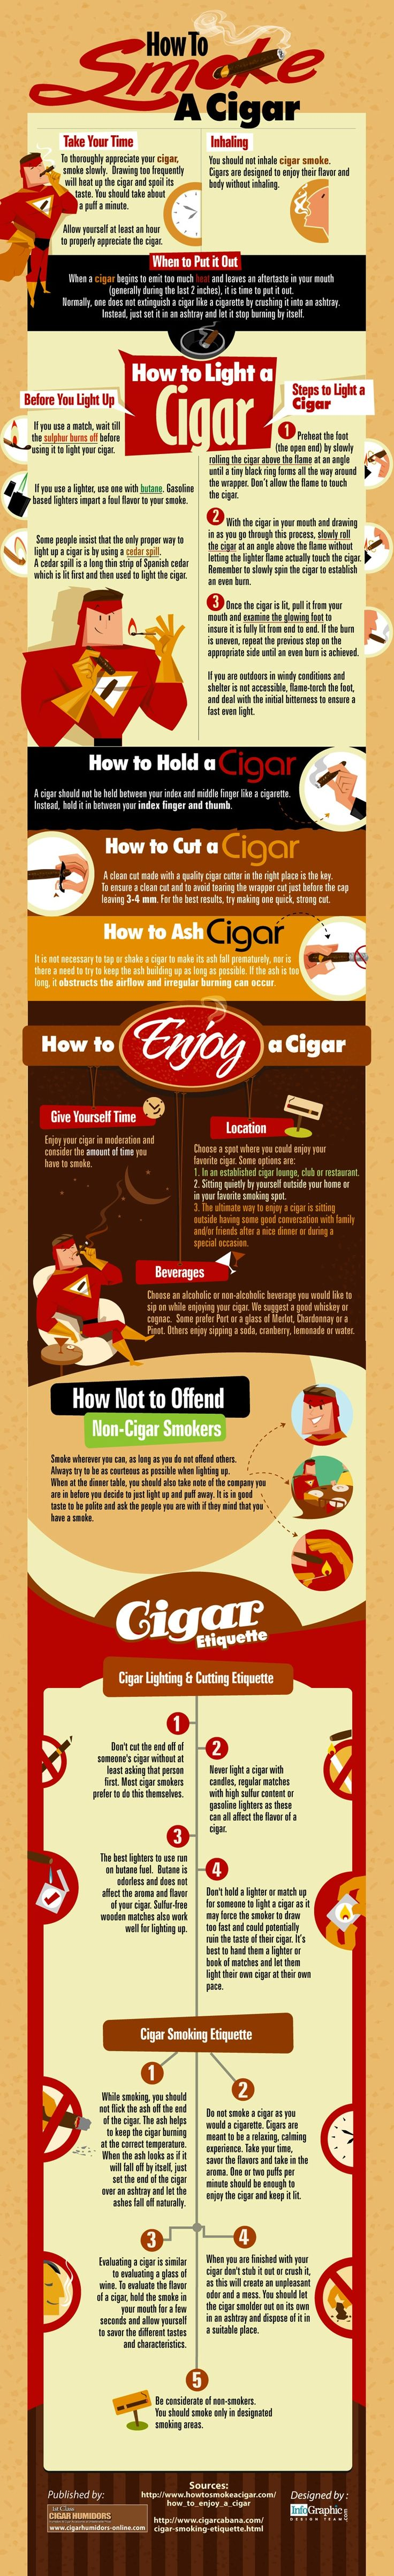 How to smoke a Cigar / Infographic